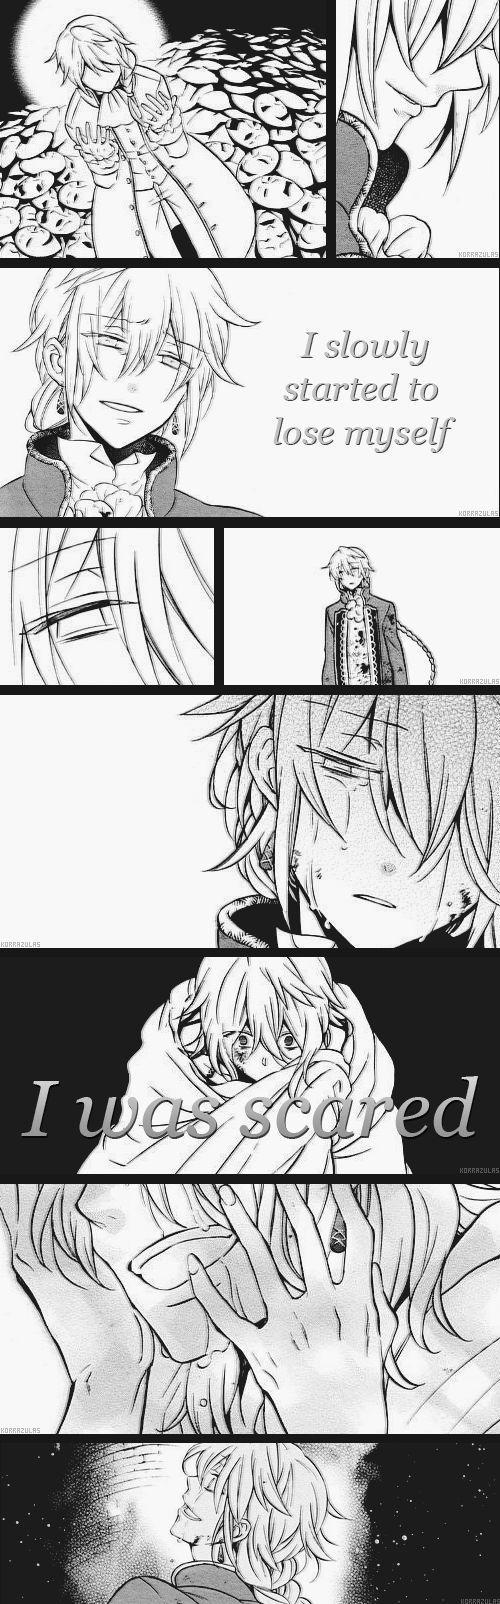 """I slowly started to lose myself... I was scared."" 